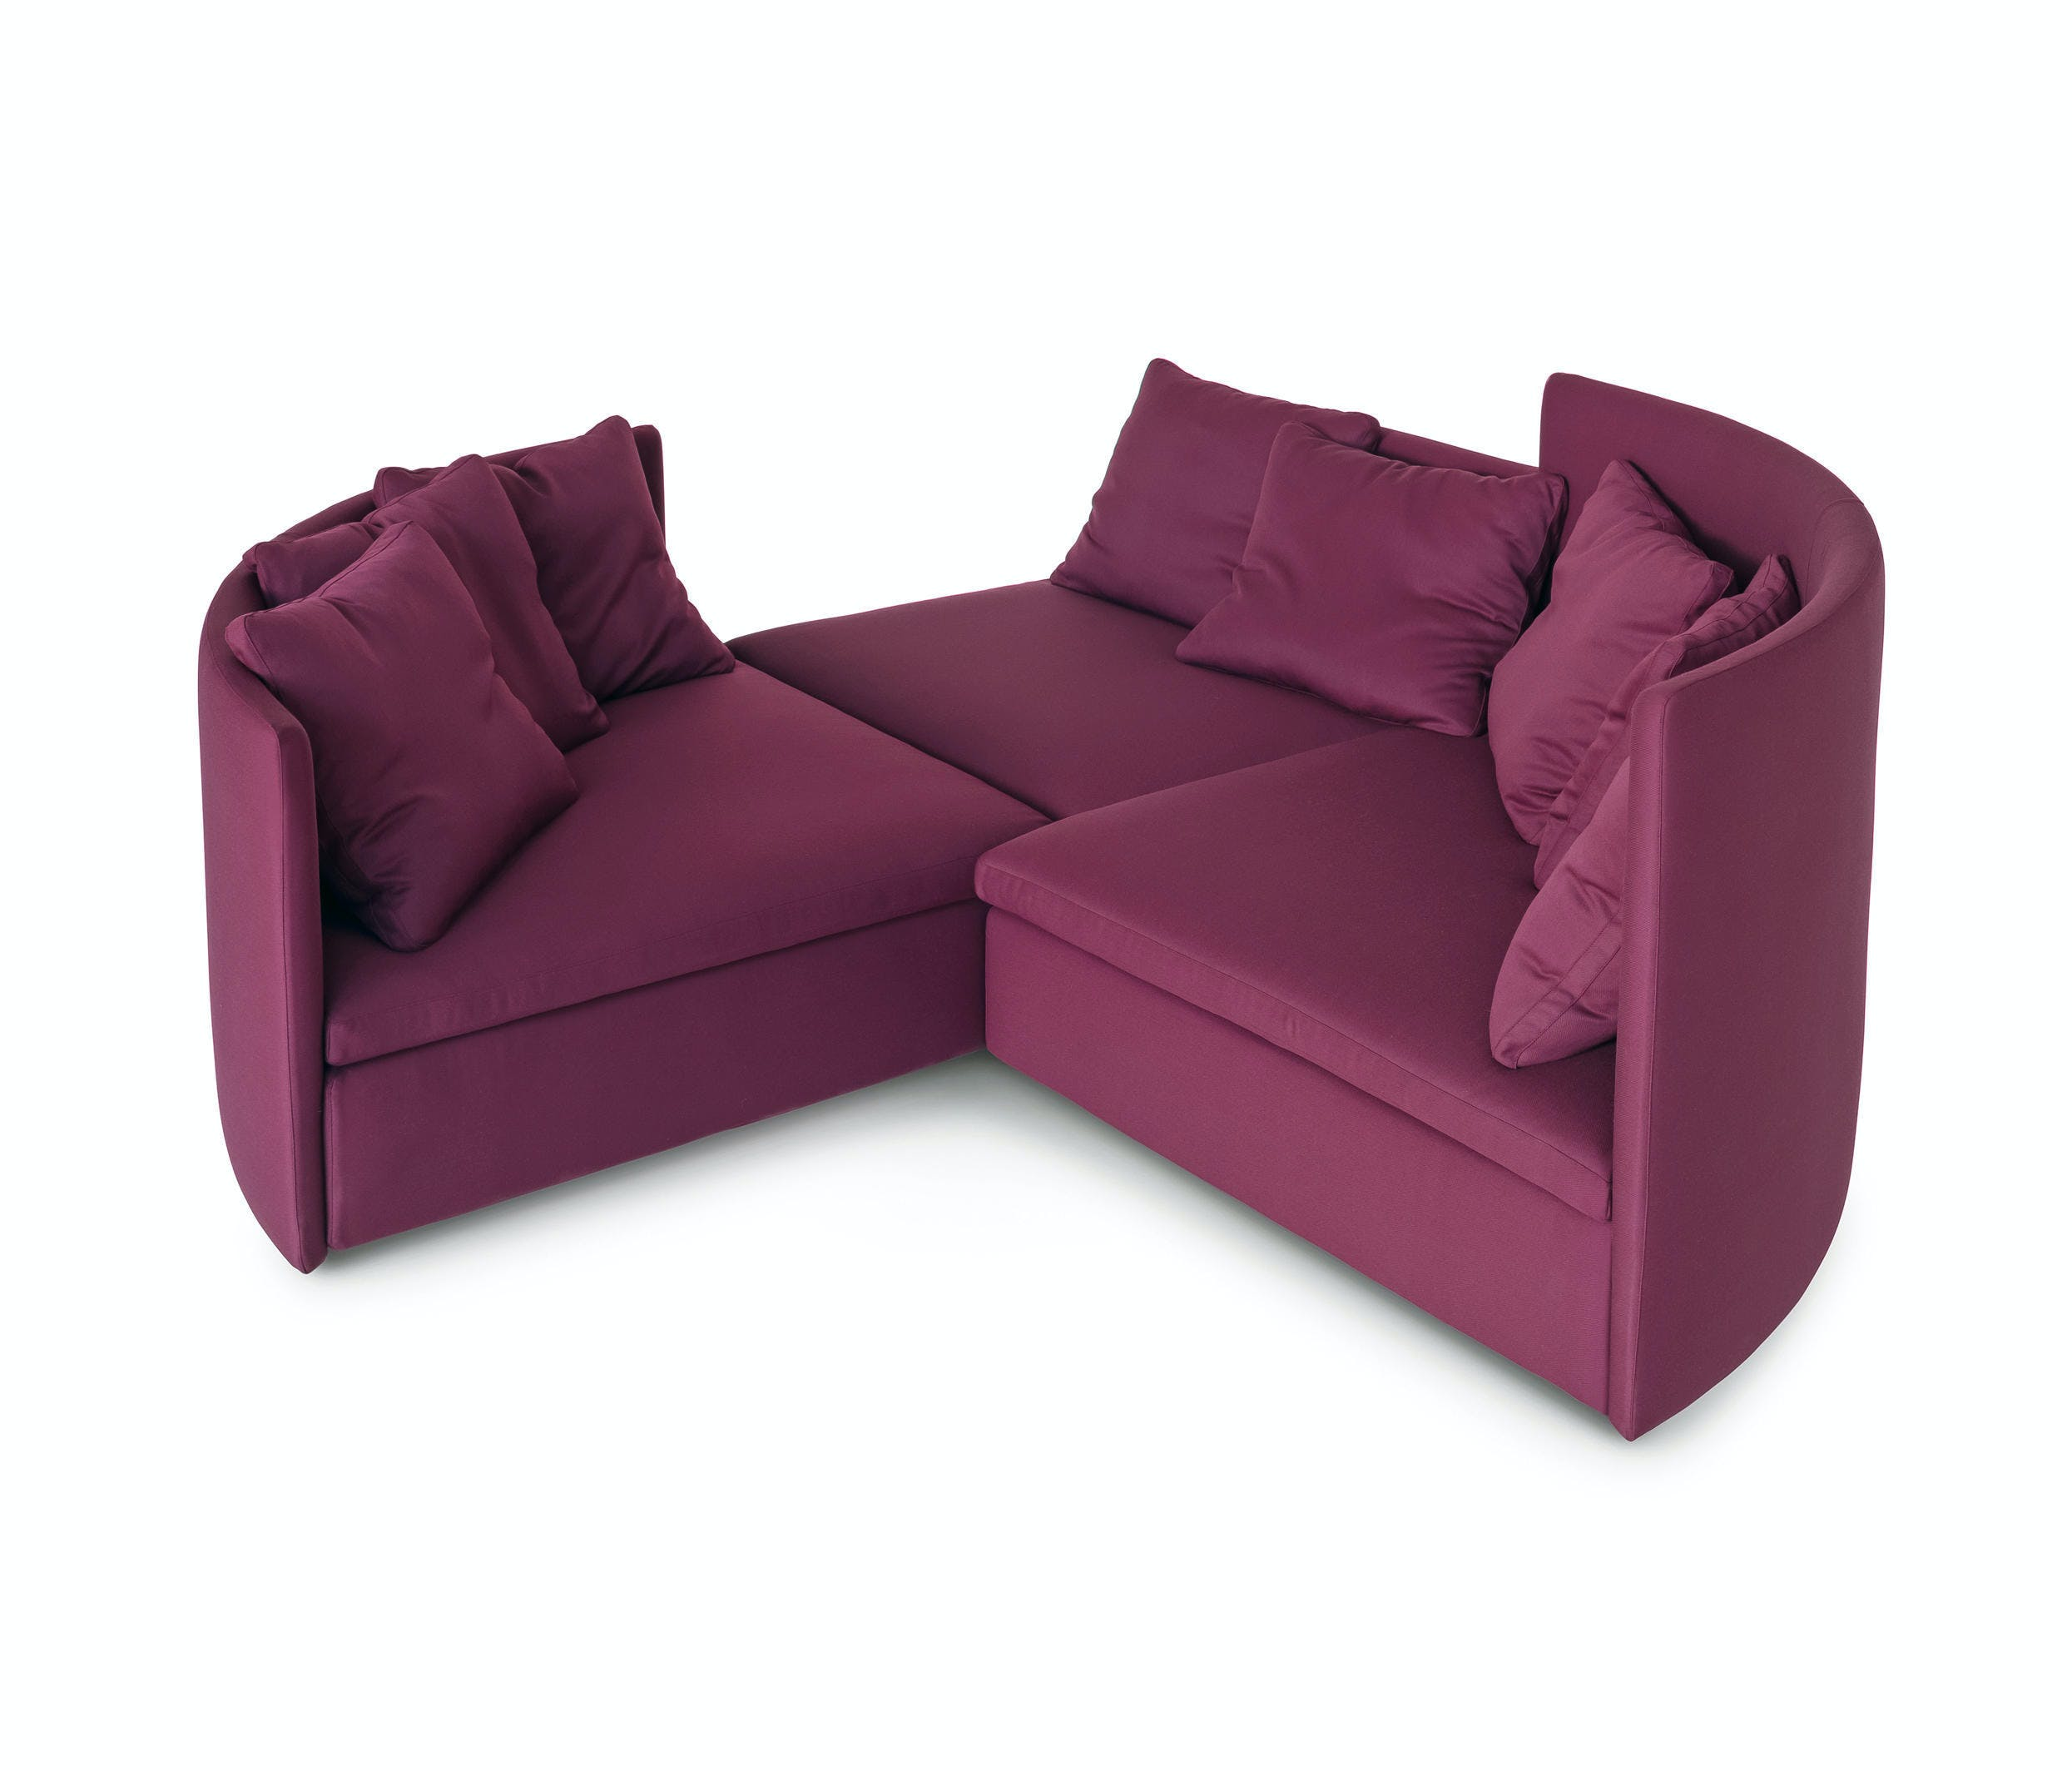 Arflex Fuschia Mangold Three Piece Sofa Haute Living